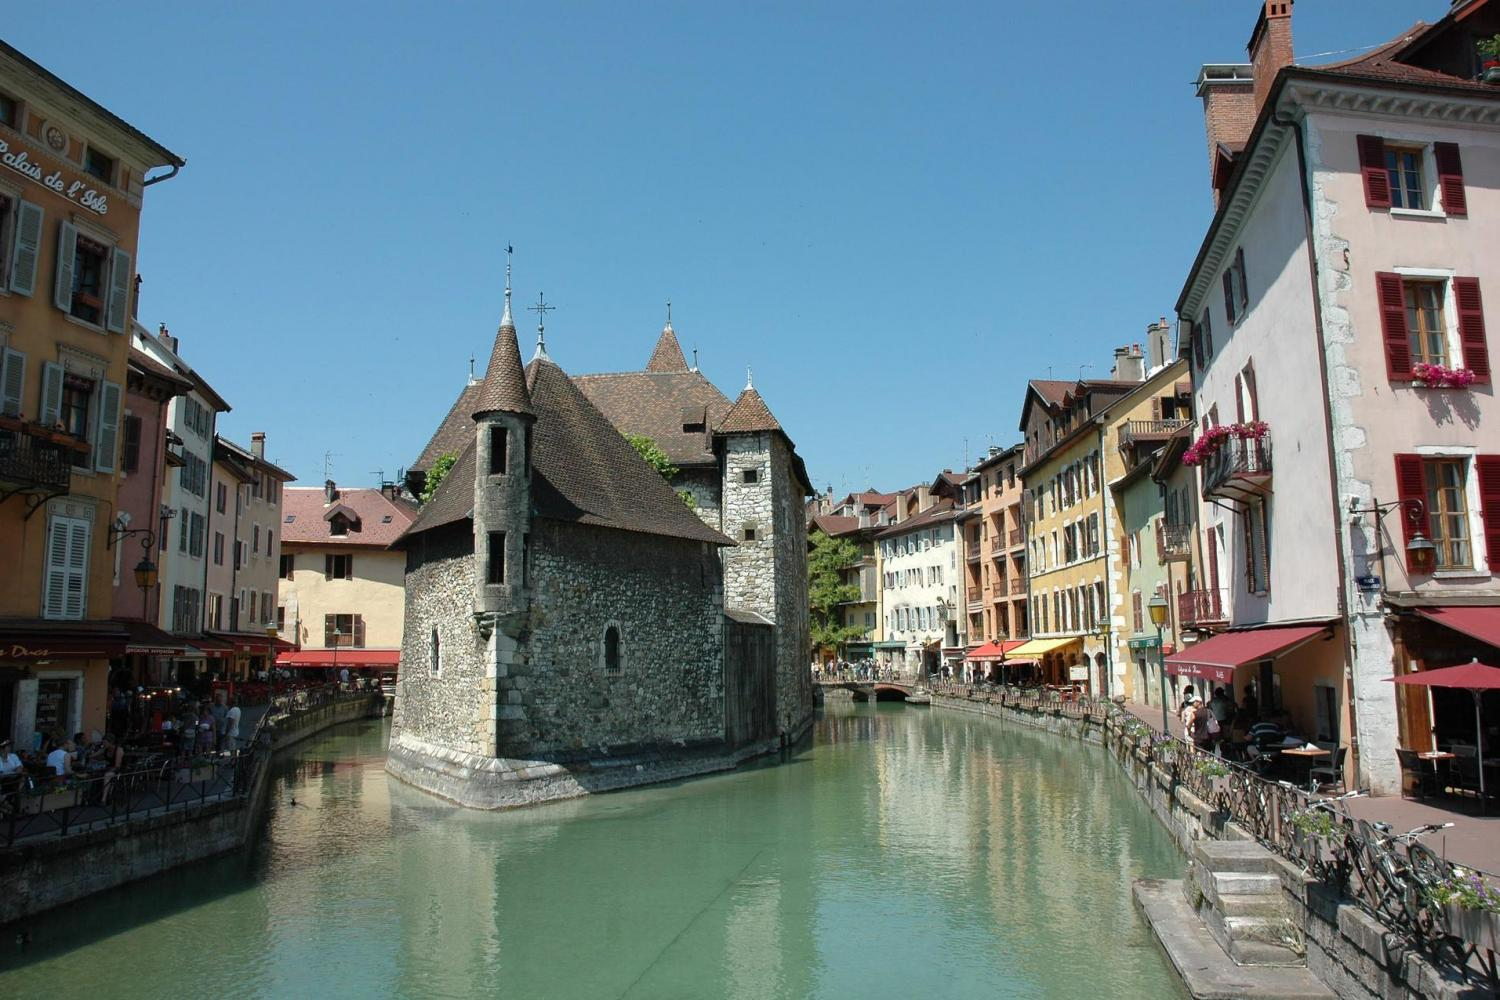 Annecy City Tour - The Venice Of The Alps